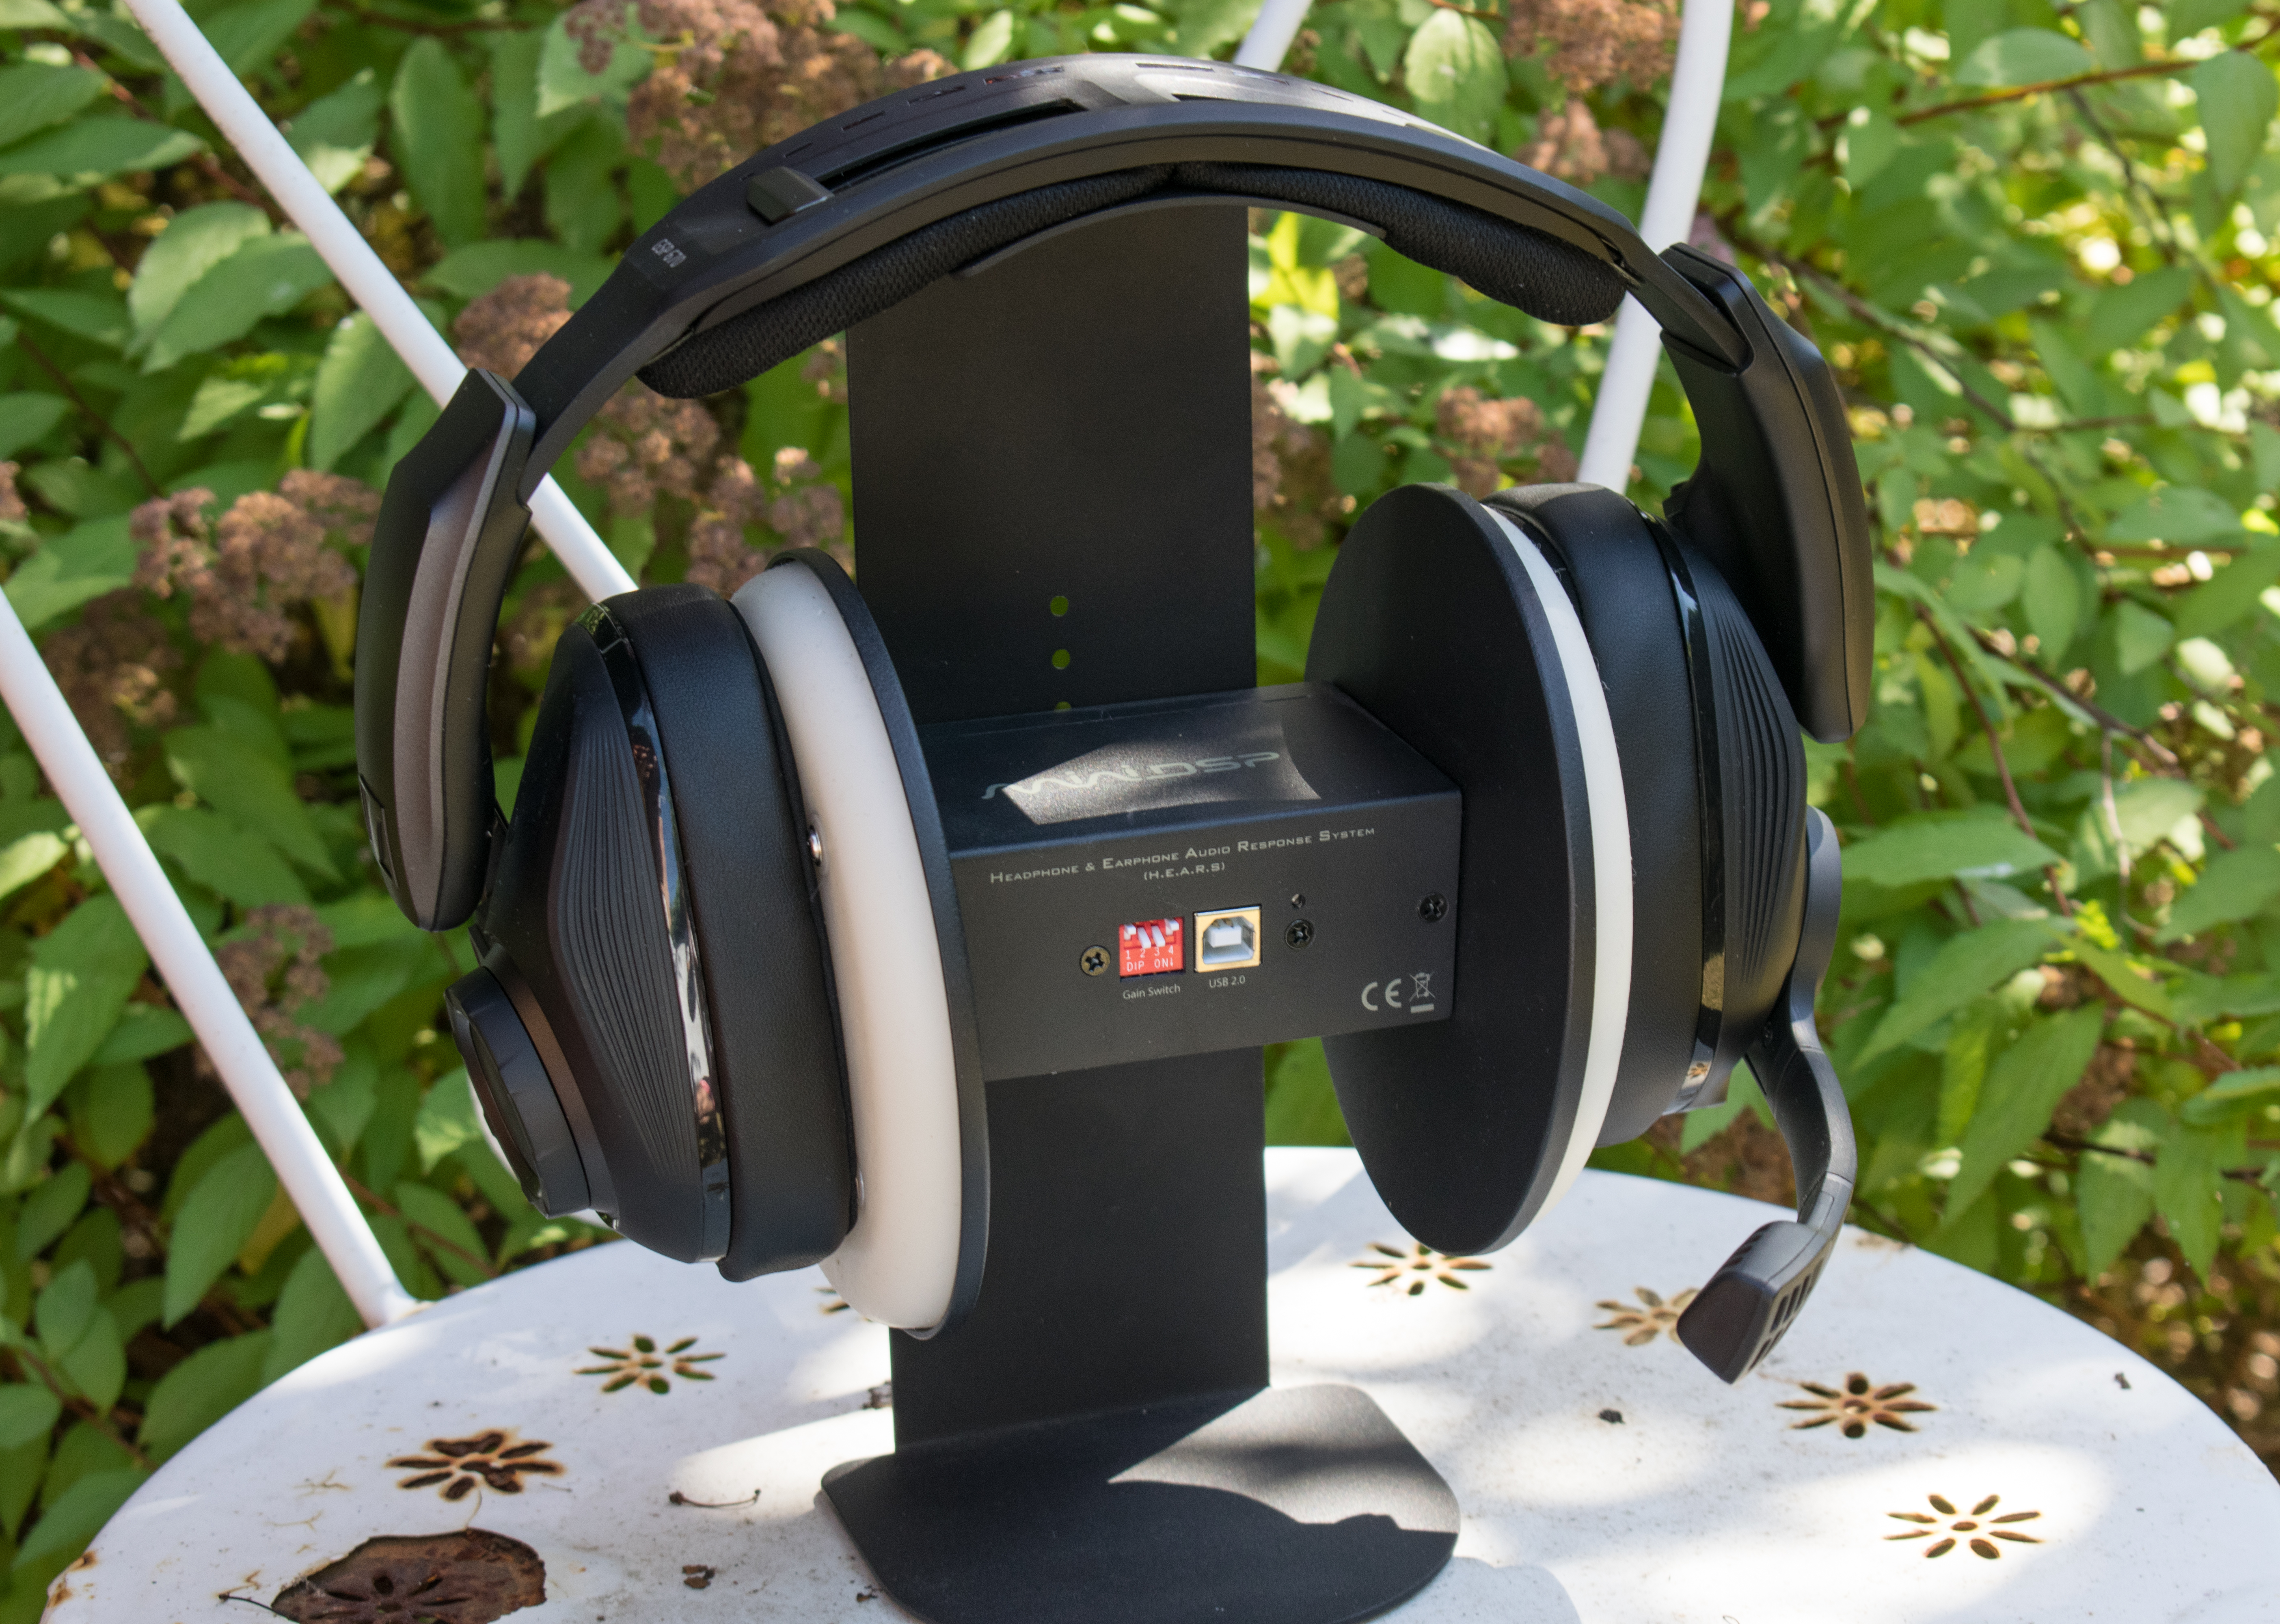 The Sennheiser GSP670 Wireless Gaming Headset Review